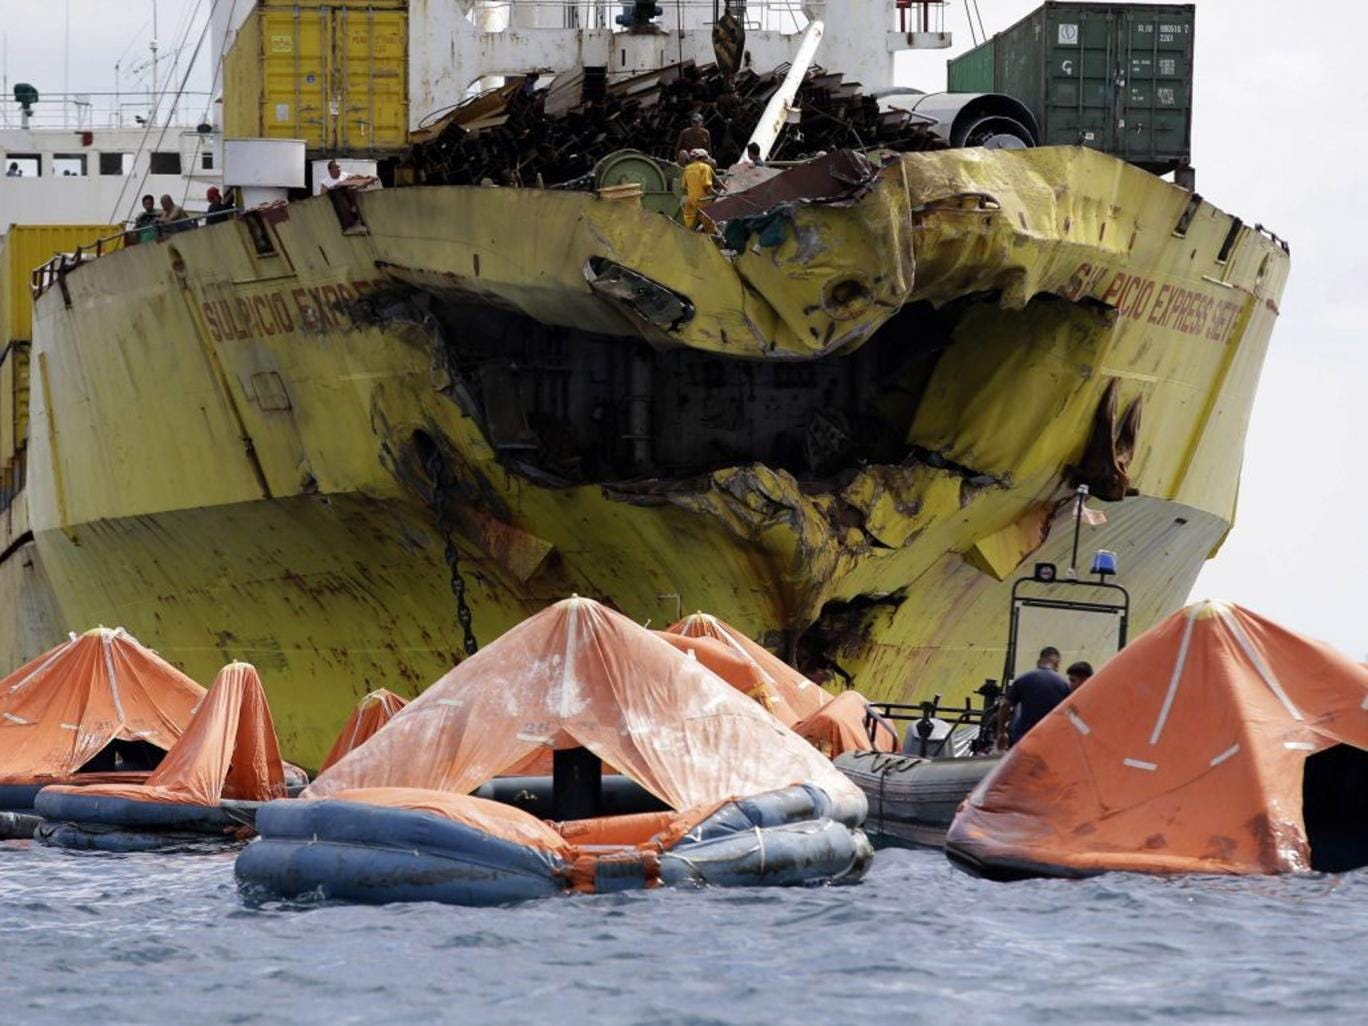 A cluster of life rafts floats near the cargo ship Sulpicio Express Siete Saturday Aug. 17, 2013, a day after it collided with a passenger ferry